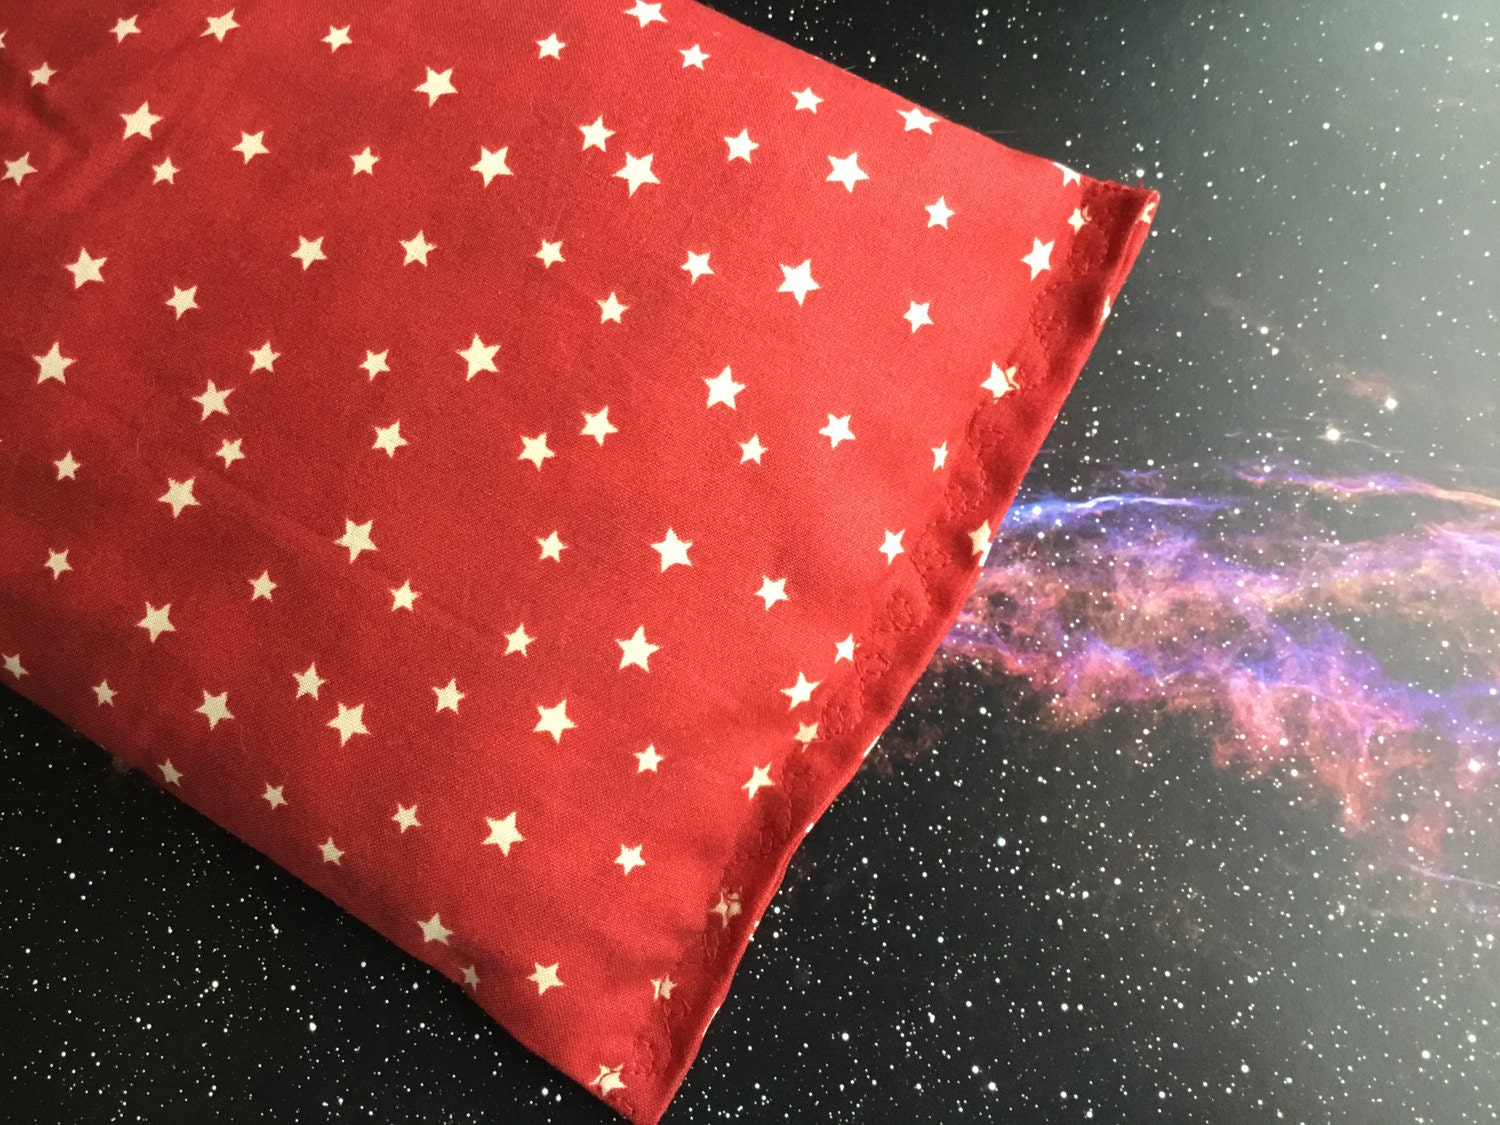 Rice bags hot cold pack heating pad space cotton for Space themed fleece fabric